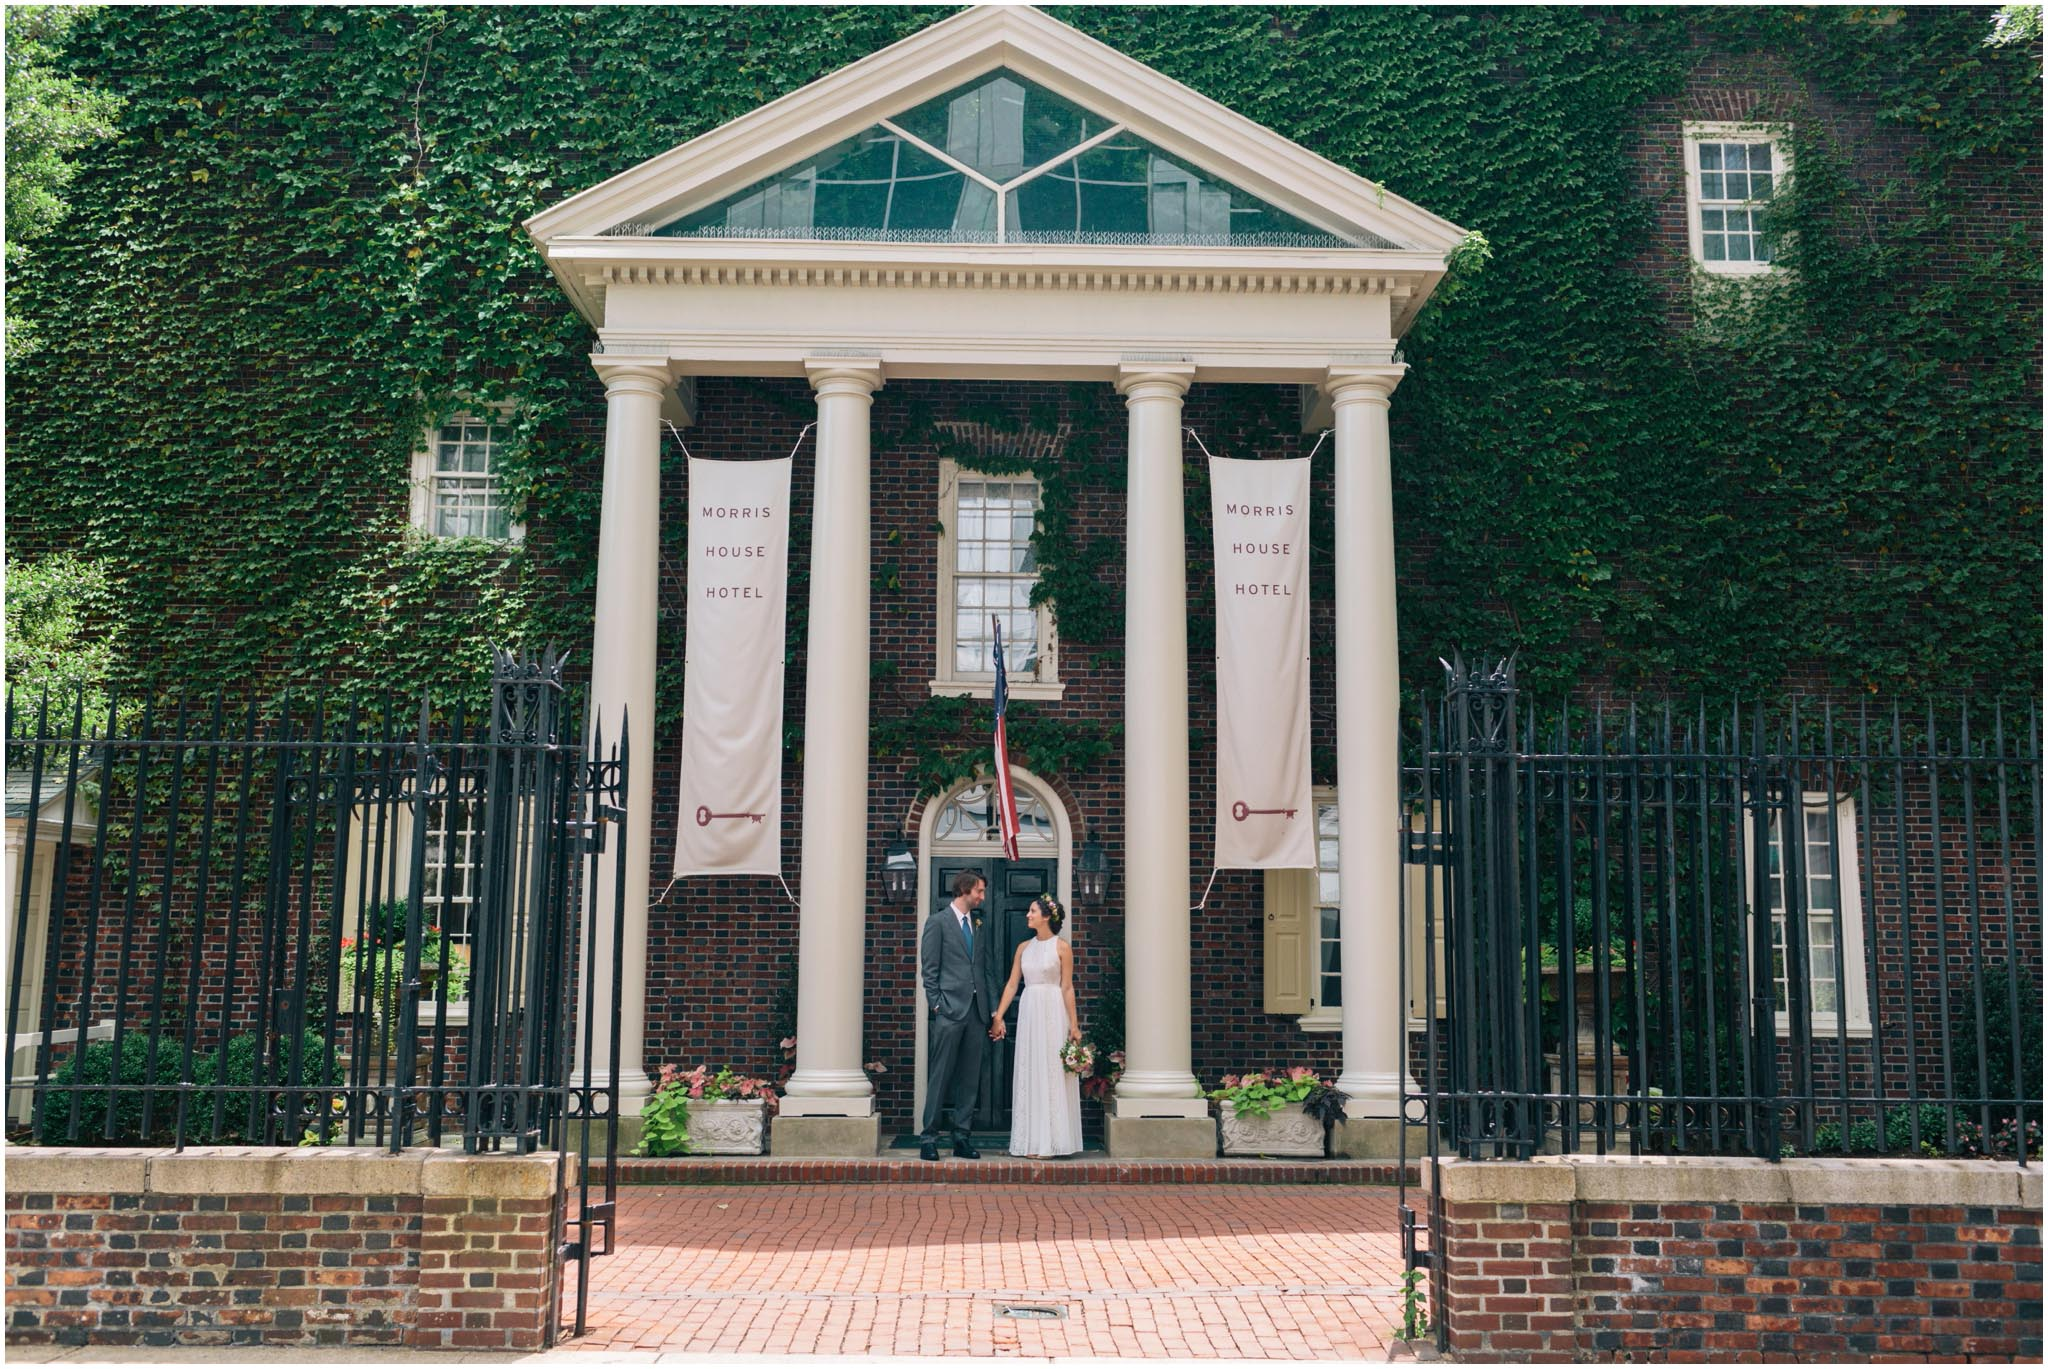 Morris House Hotel, Philadelphia, wedding